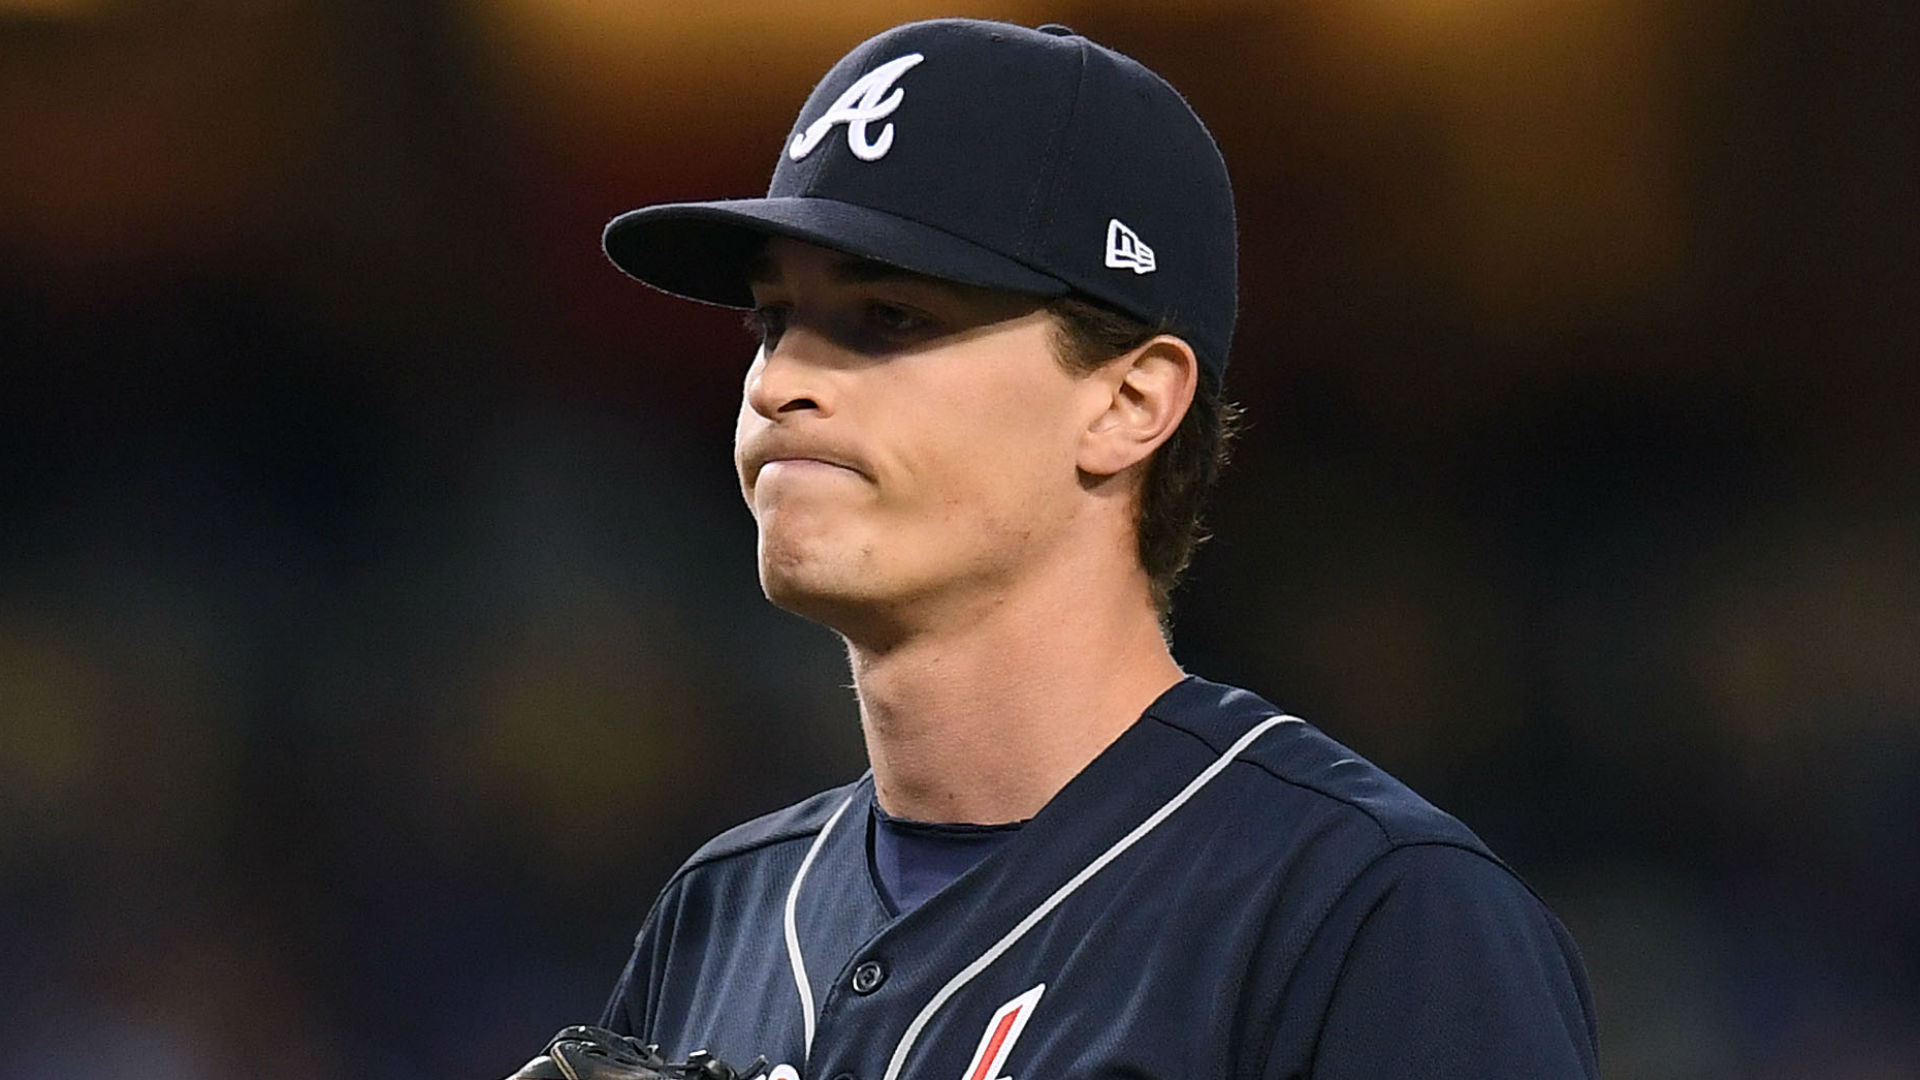 Max Fried injury update: Braves lefty (blister) placed on 10-day IL